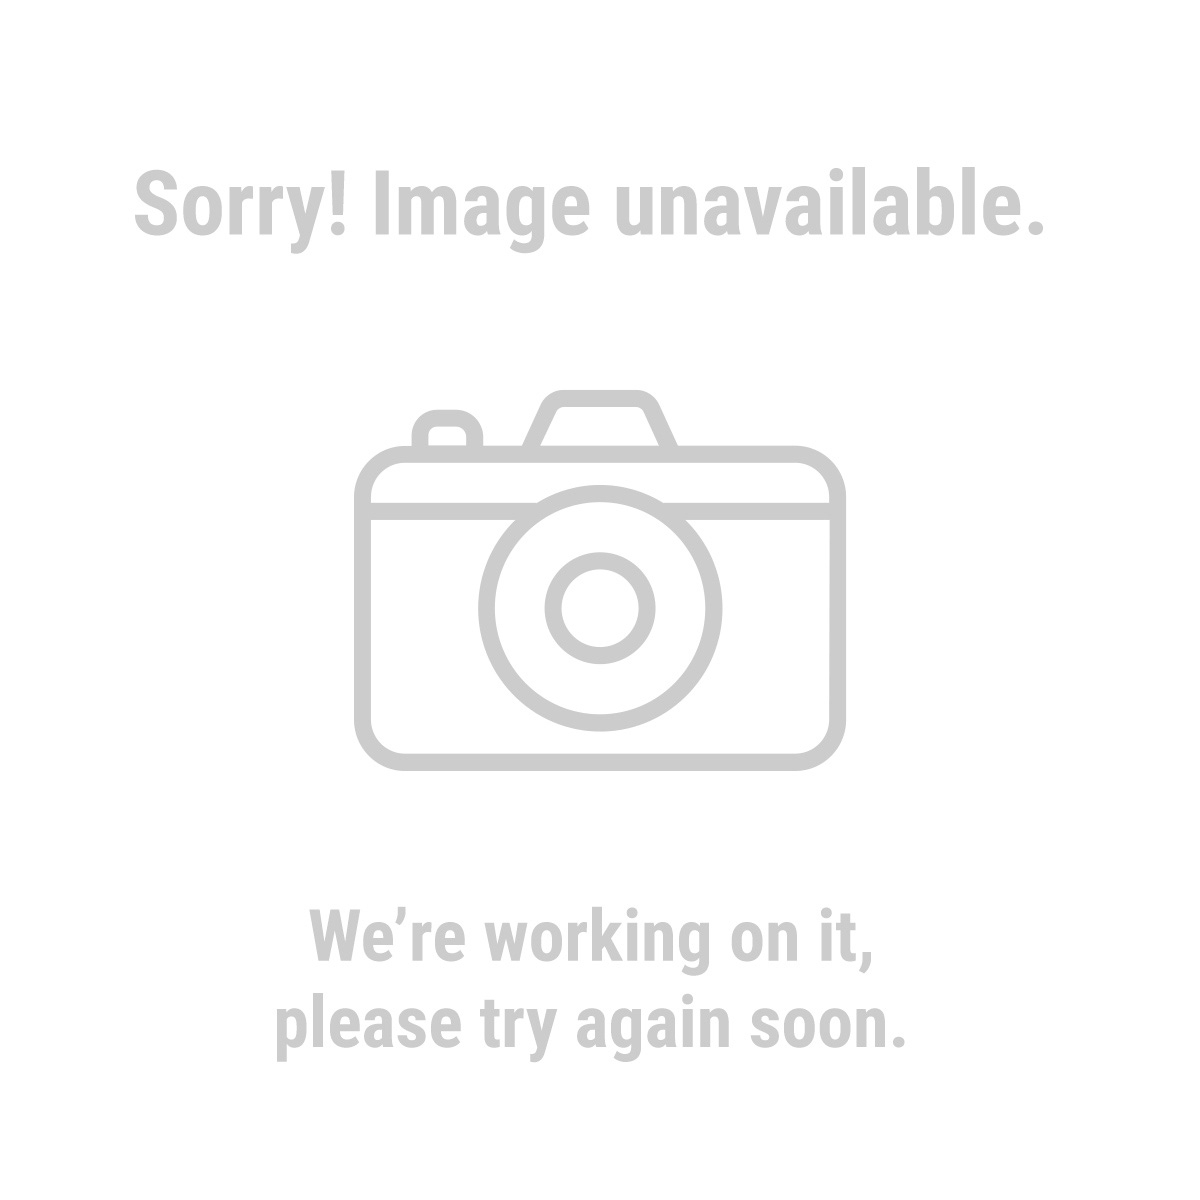 Storehouse® 95807 ABS Storage Organizer